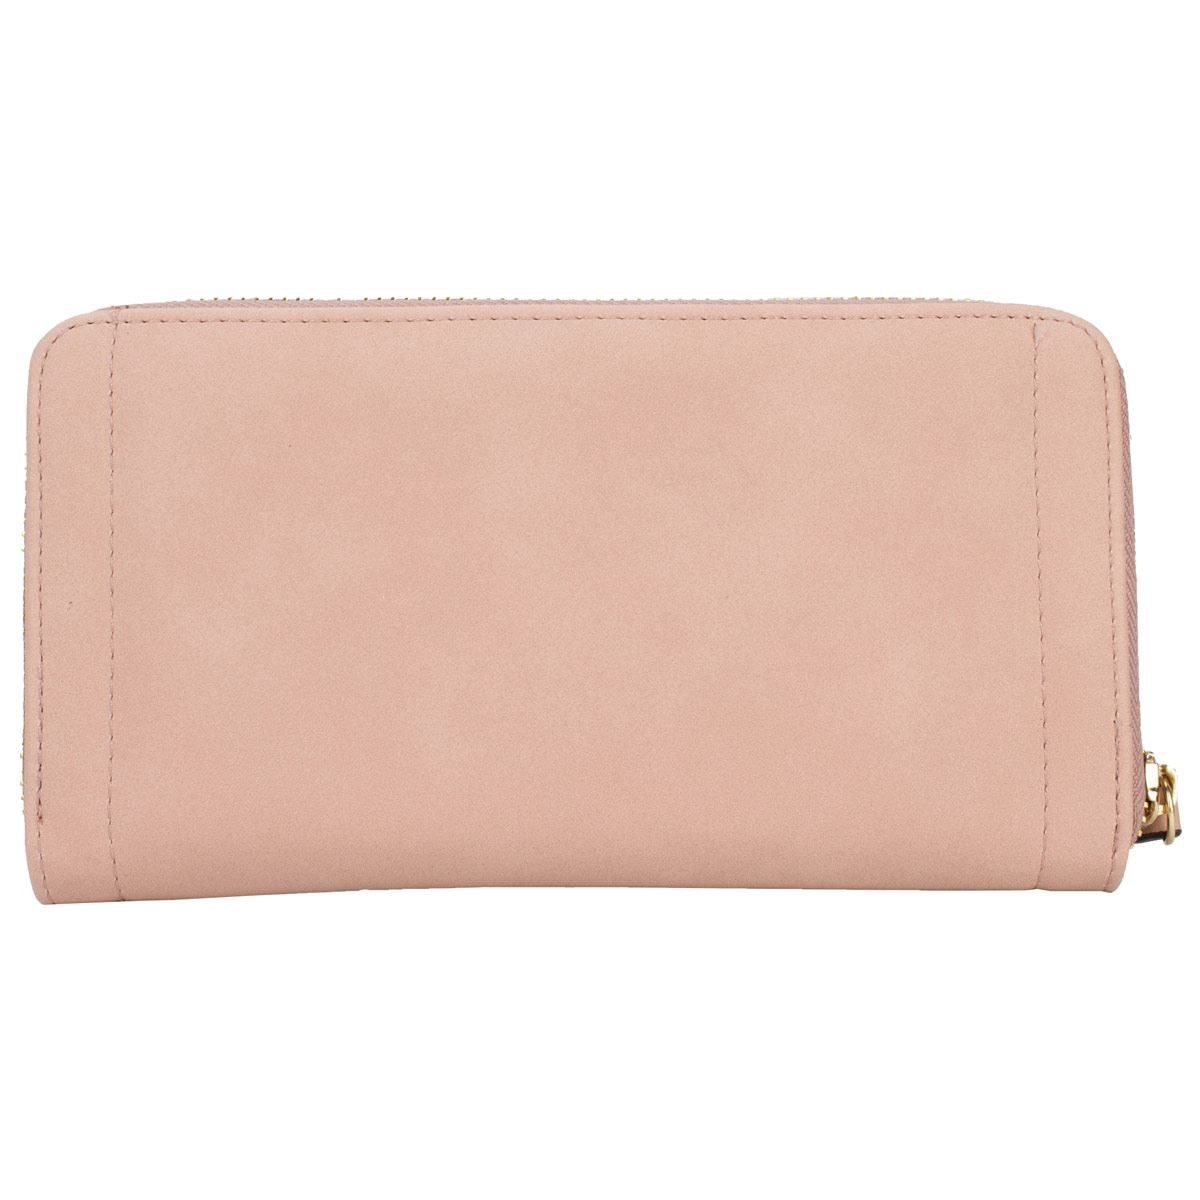 f6e064539 Cartera Perry Ellis zip around rosa